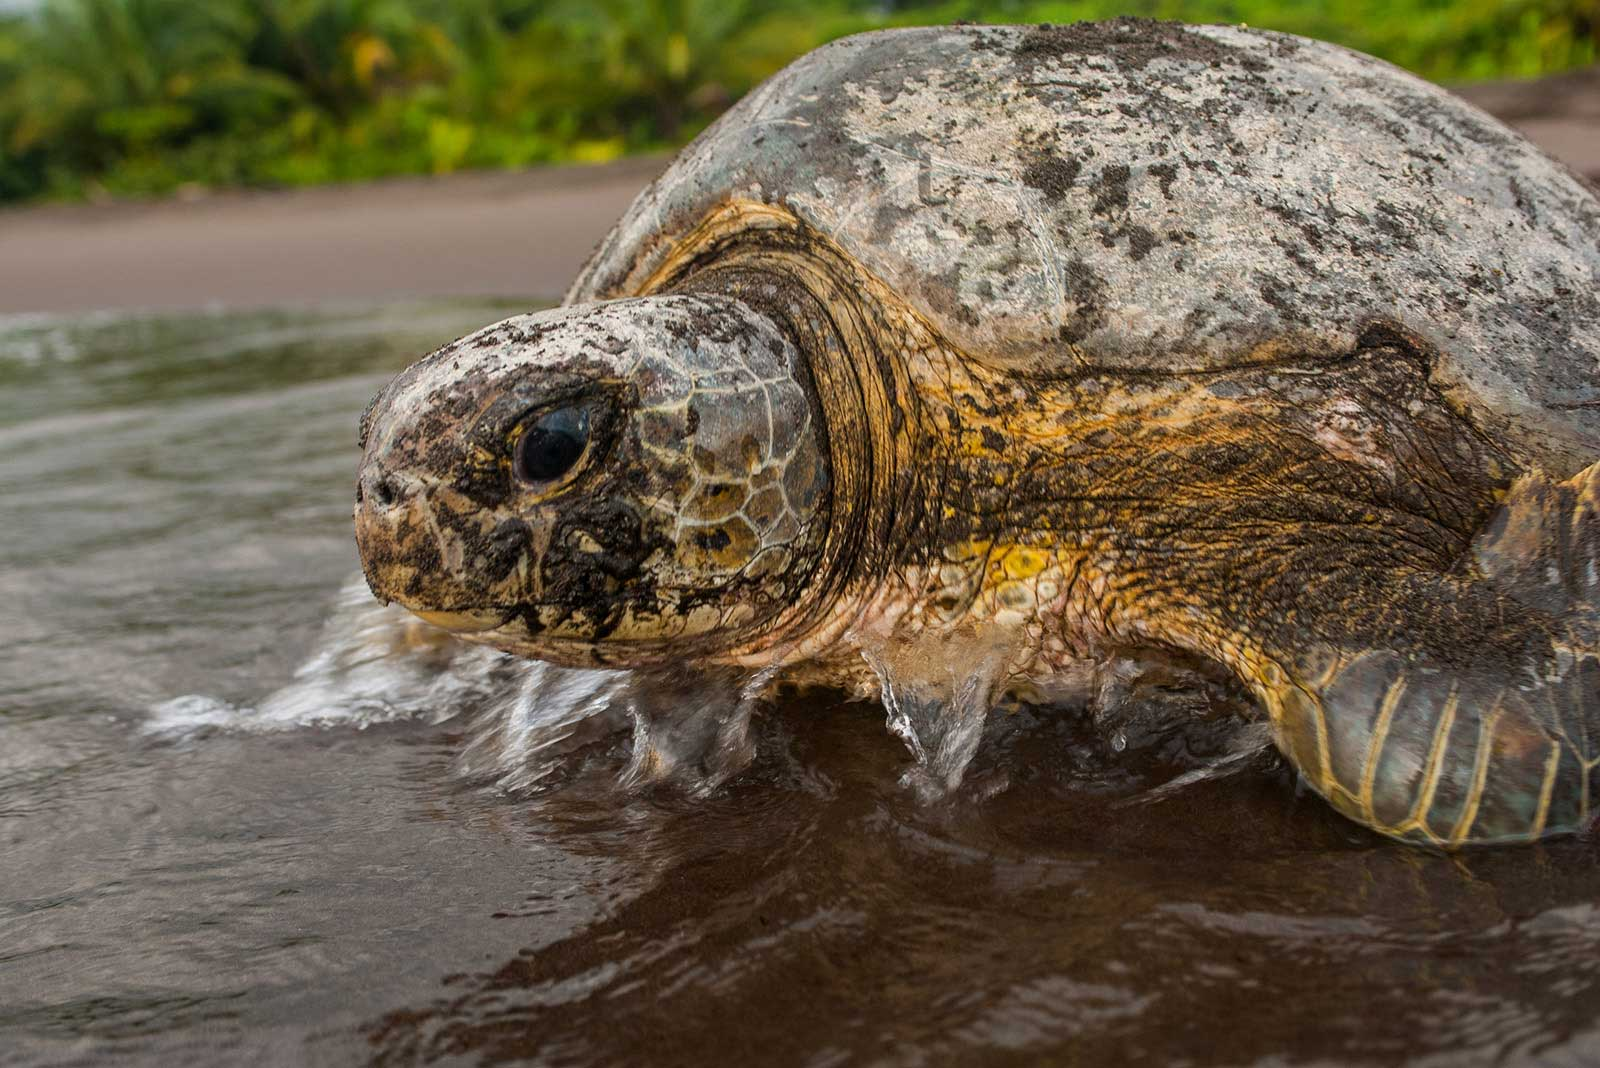 Protected: Tortuguero National Park - Costa Rica